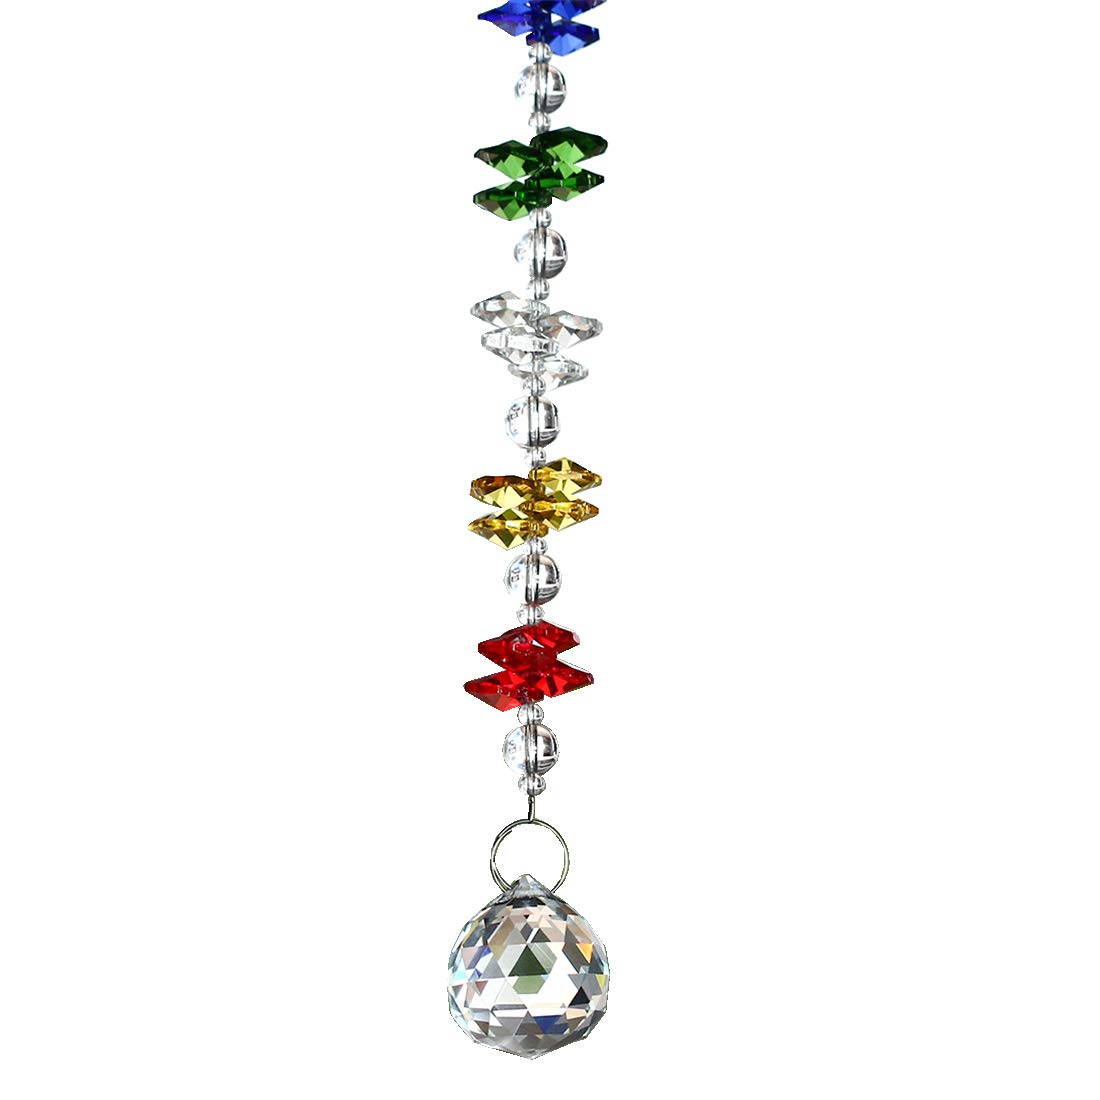 H& D Chakra Suncatcher Chandelier Crystals Ball Prisms Fengshui Rainbow Pendant Maker Car Charm LTD ADE1611300